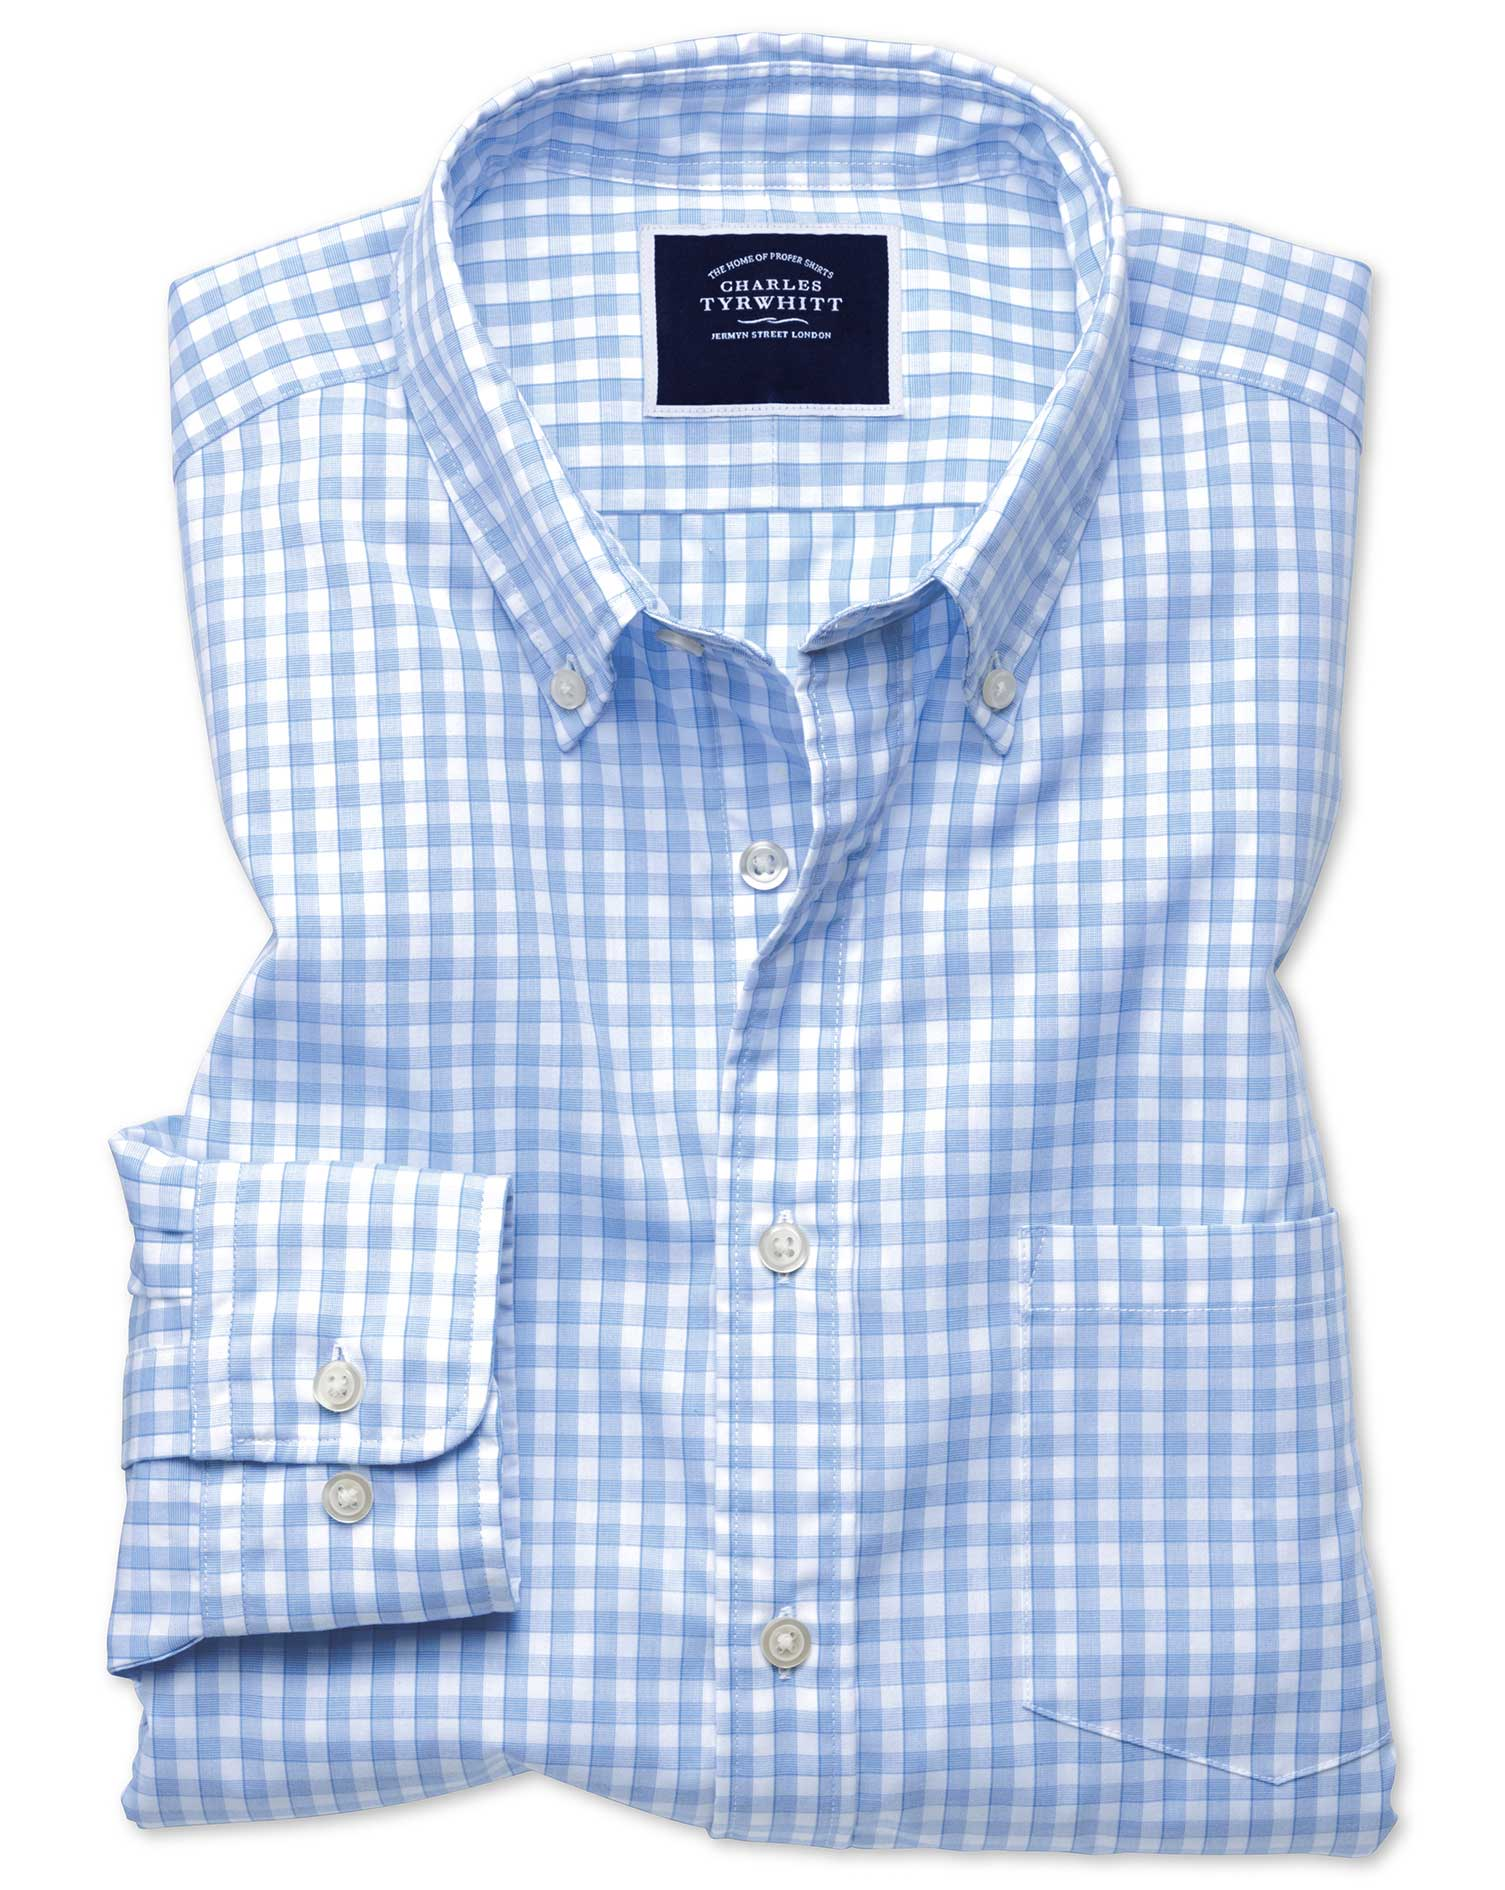 Slim Fit Sky Blue Gingham Soft Washed Non-Iron Tyrwhitt Cool Cotton Shirt Single Cuff Size Small by